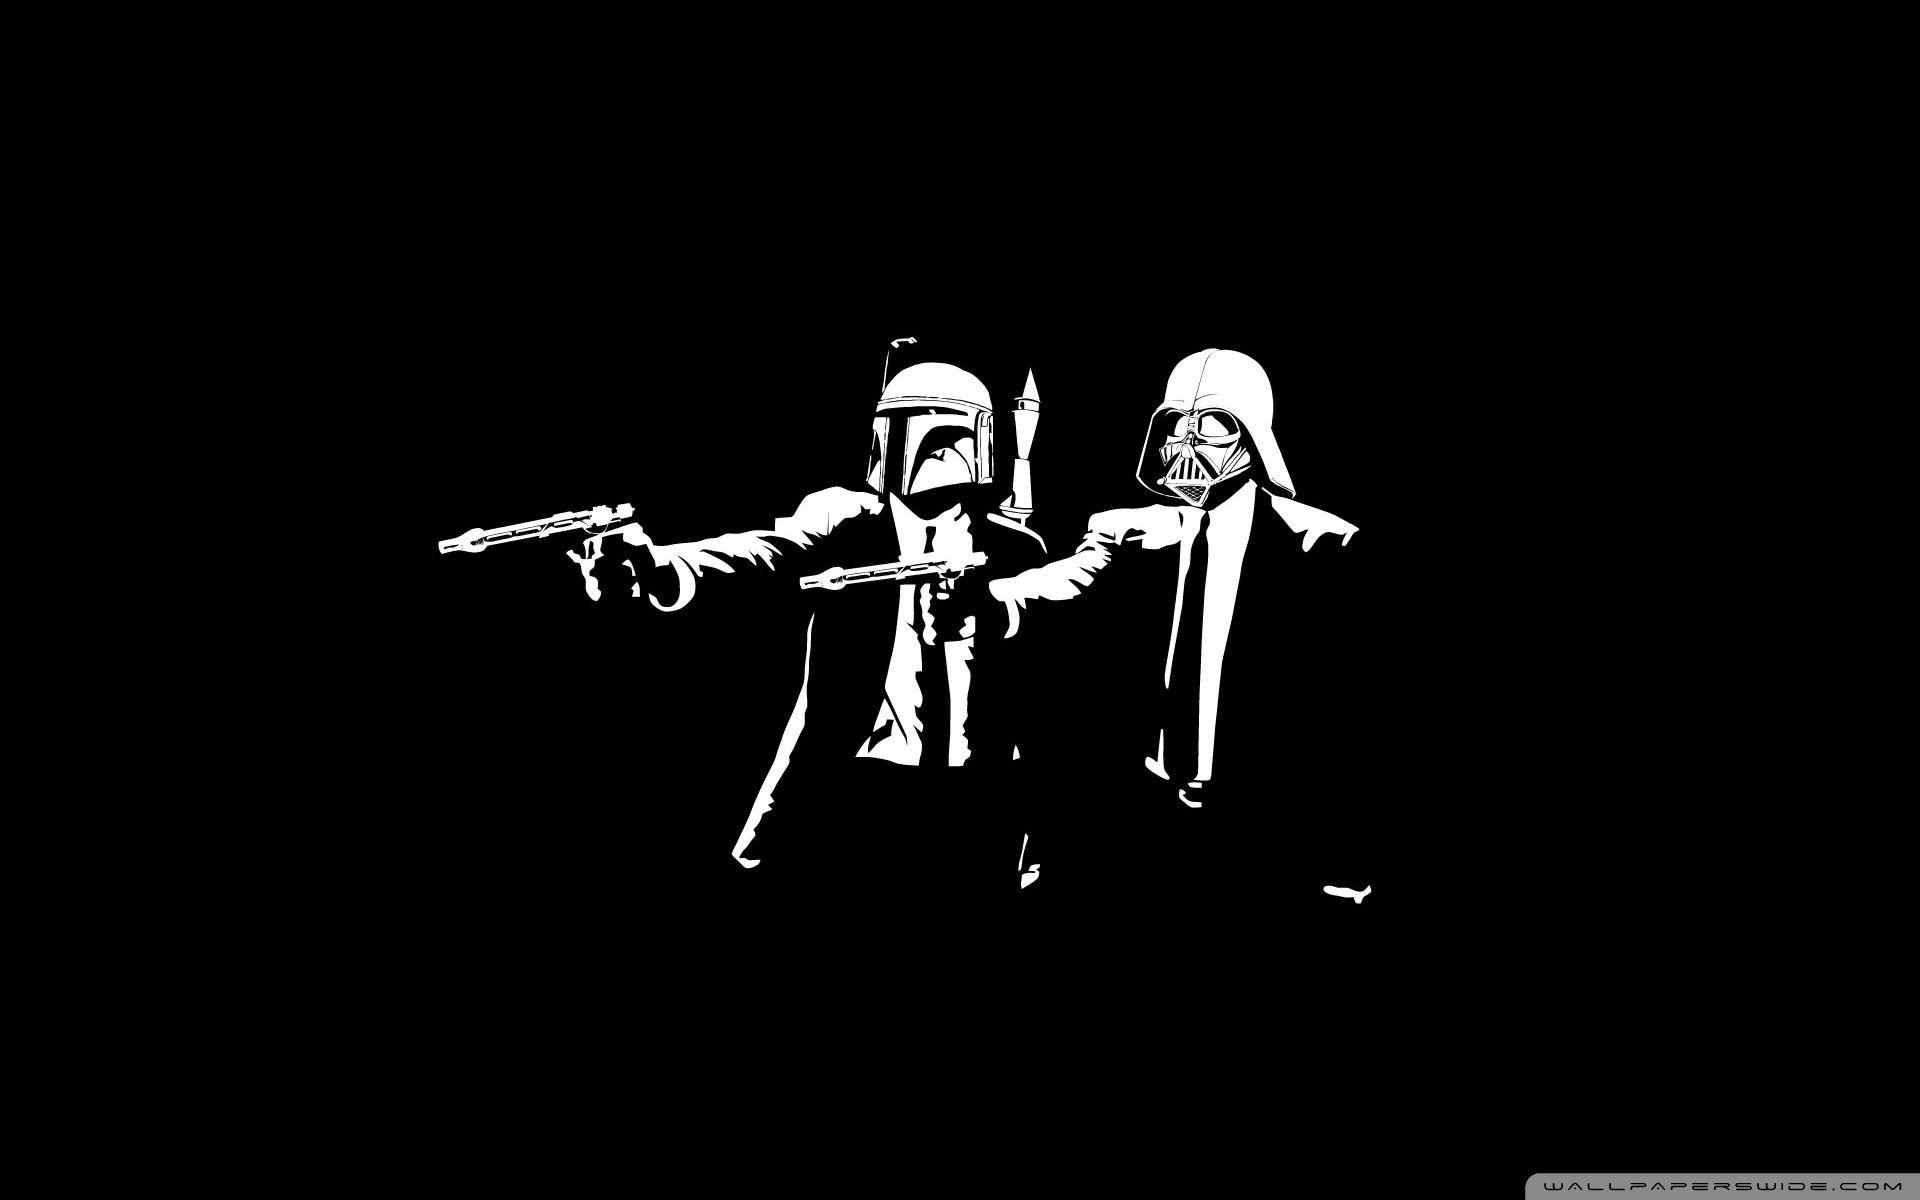 Star Wars Pulp Fiction Ultra HD Desktop Backgrounds Wallpapers for